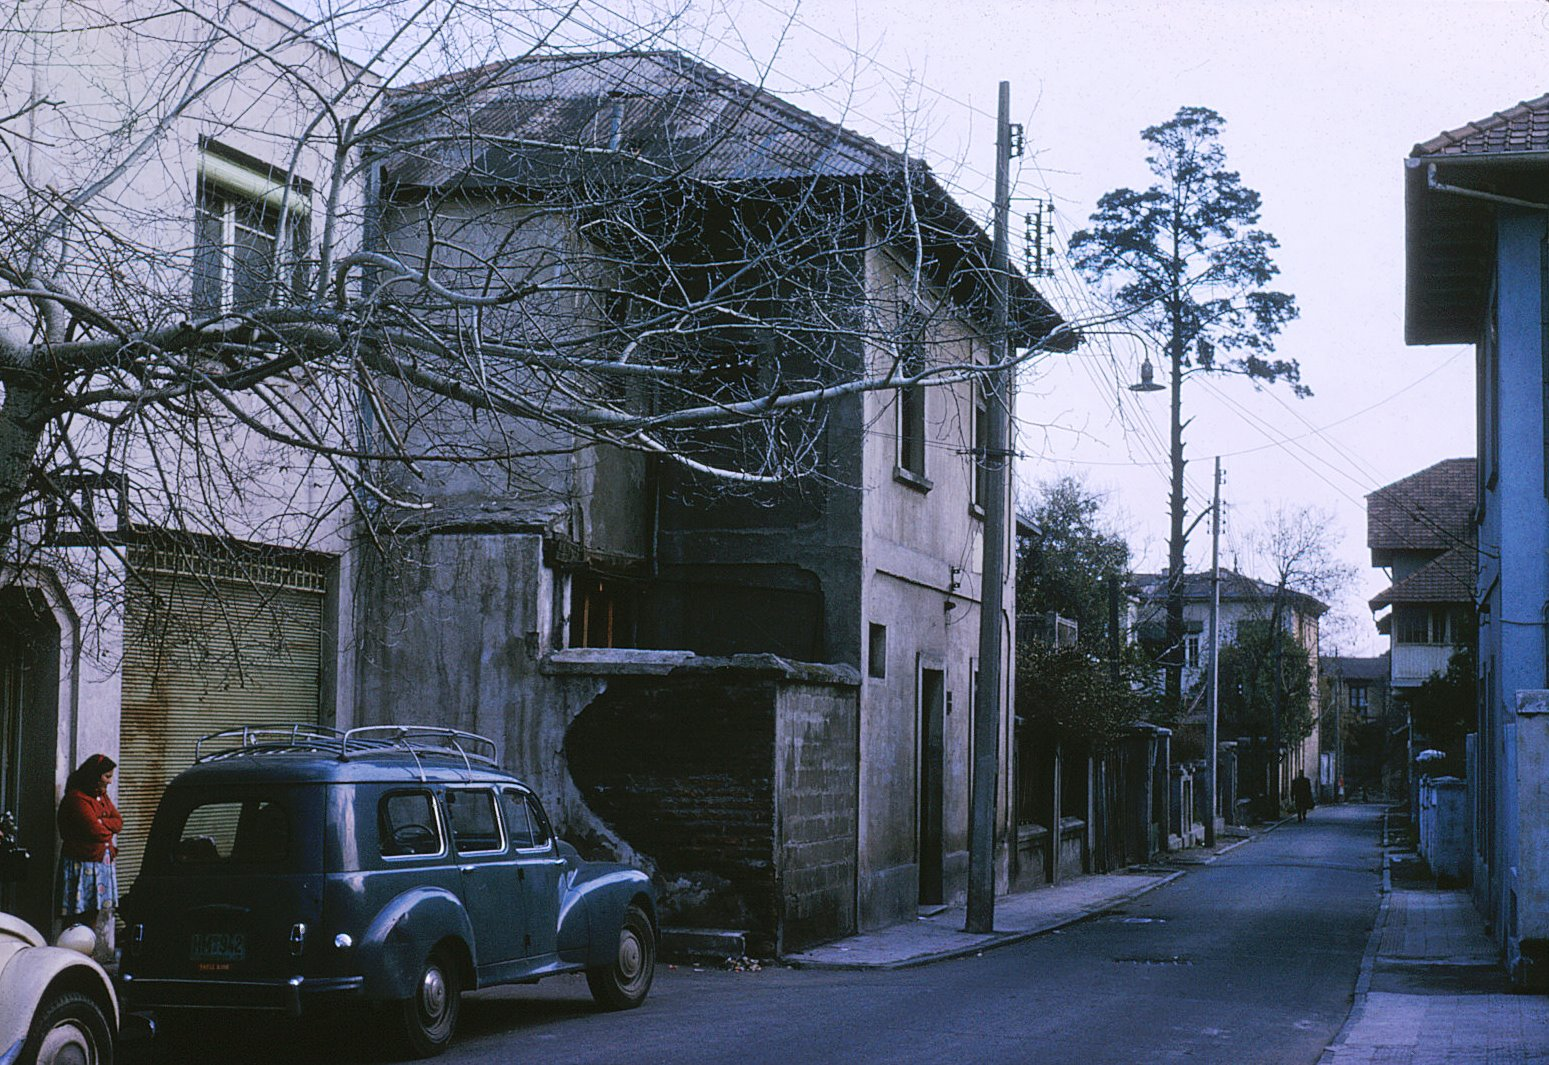 Enterreno - Fotos históricas de chile - fotos antiguas de Chile - Calle Granaderos, Providencia, 1959